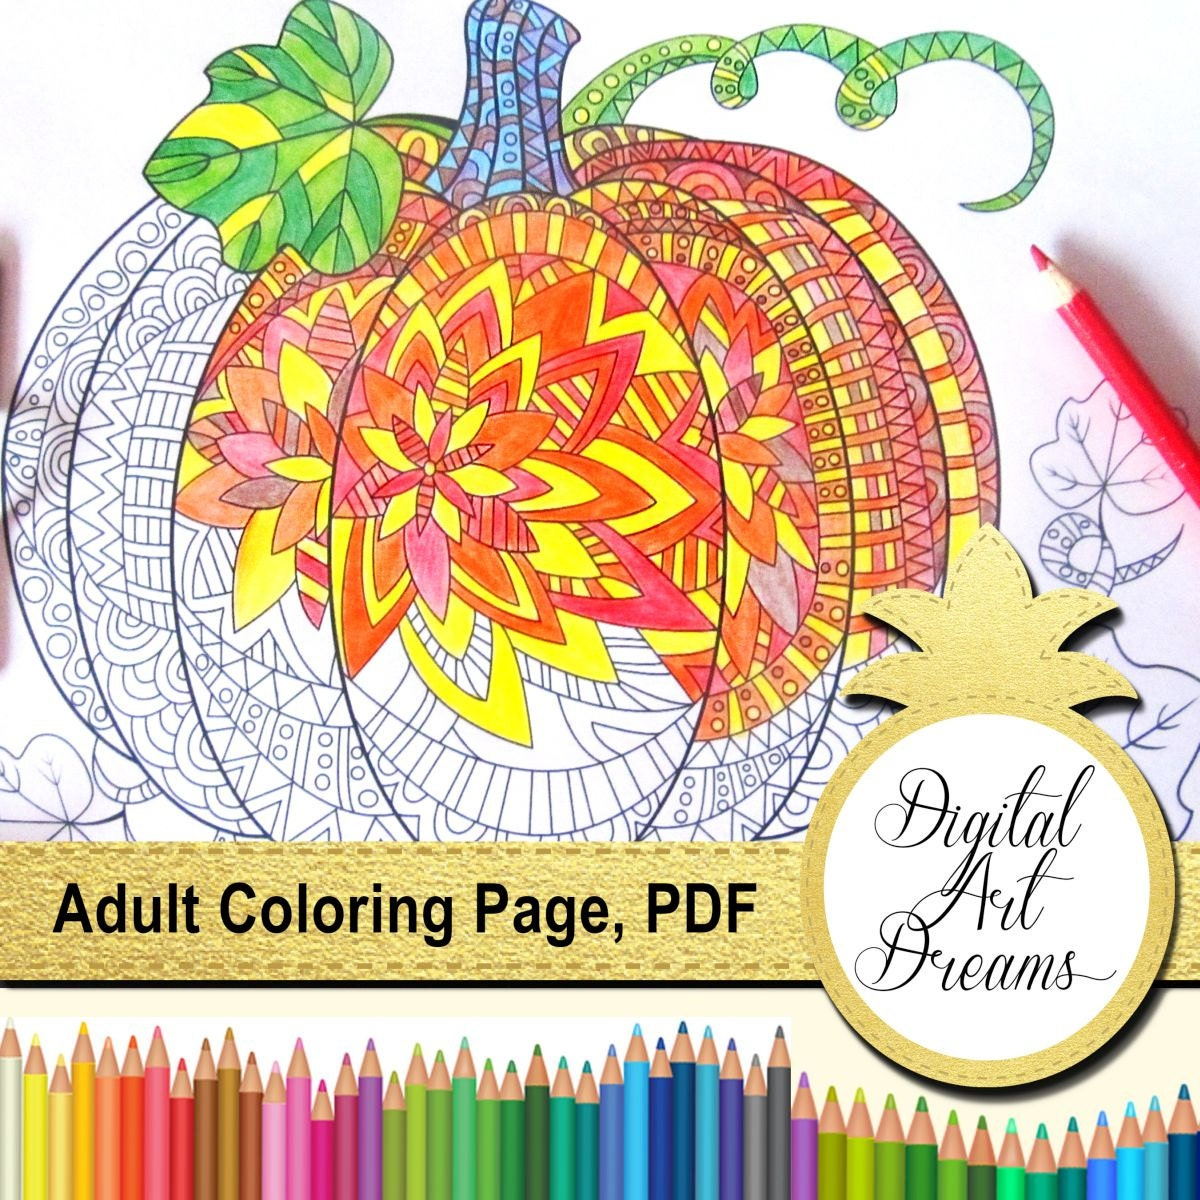 Pumpkin Coloring Pages for Adults Printable Pumpkins Pumpkin | Etsy